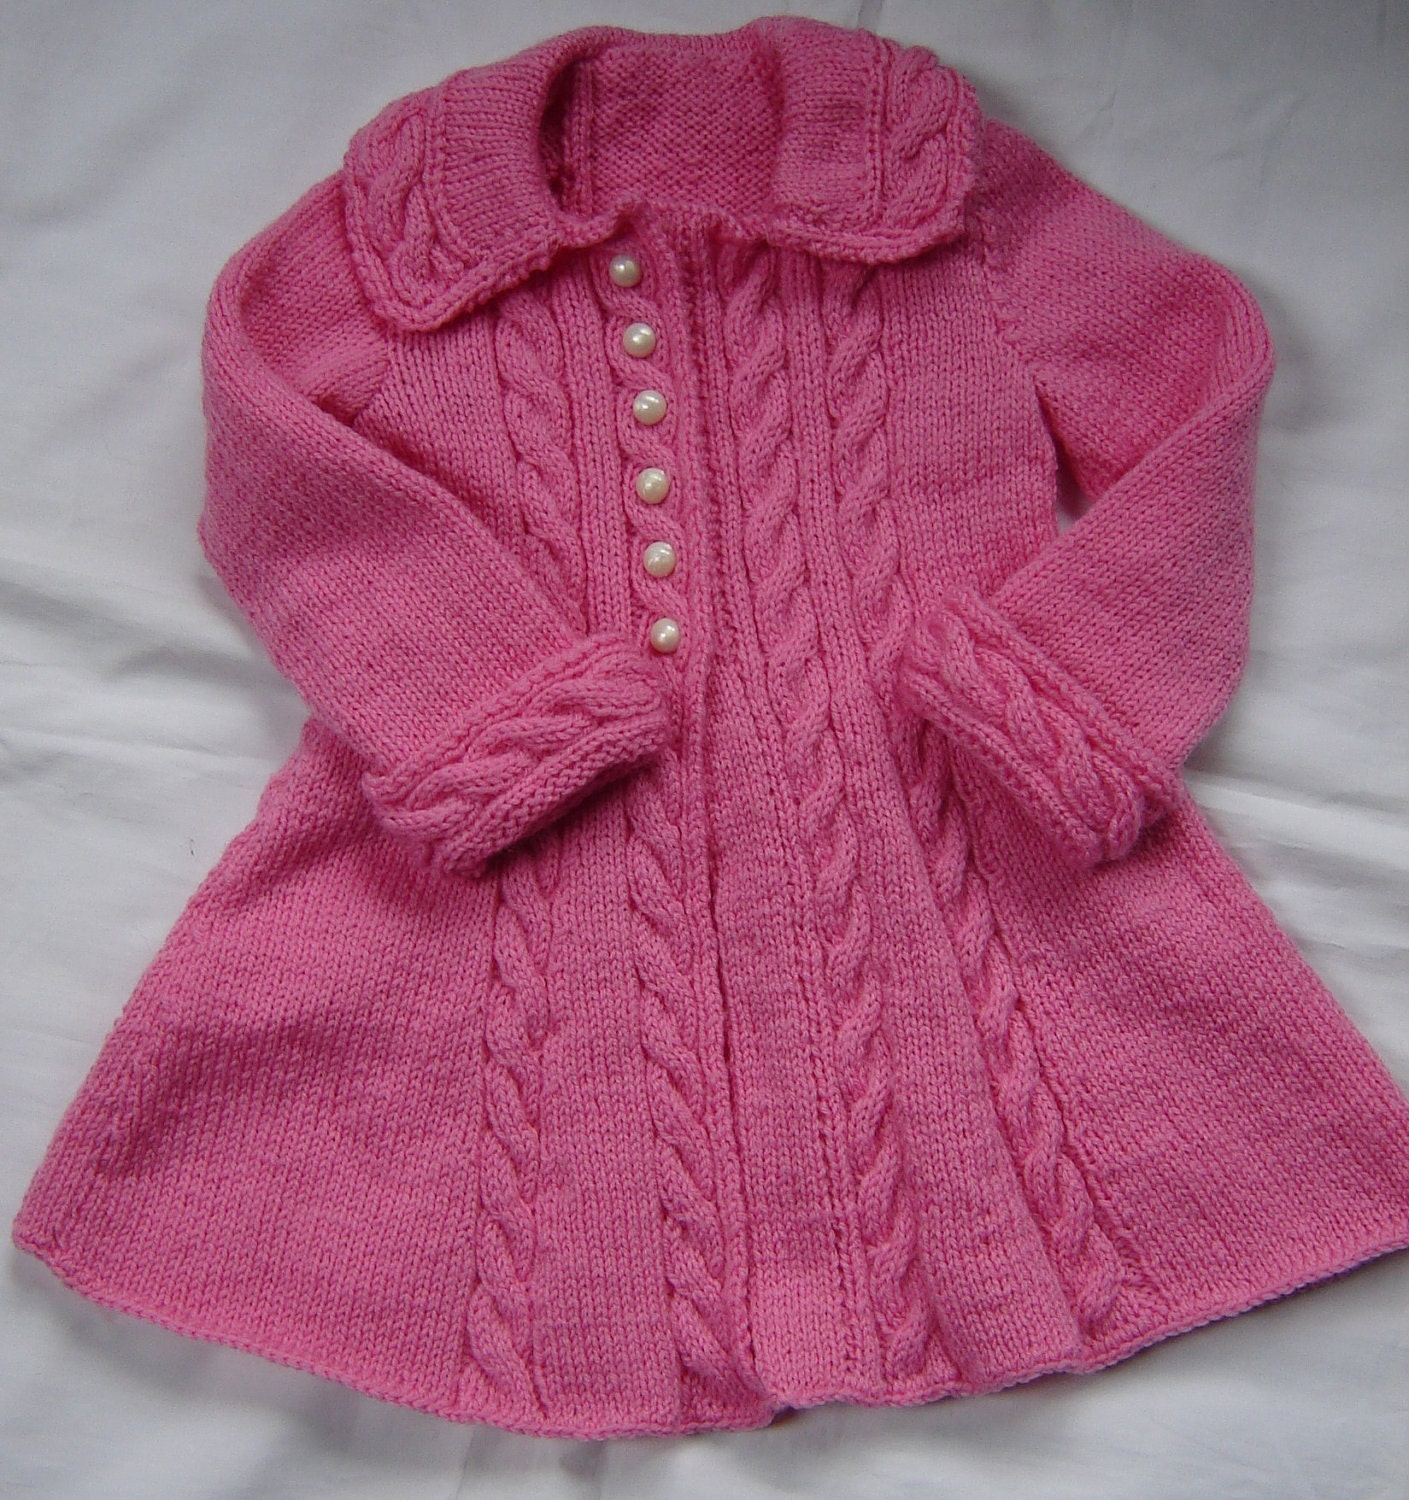 Buy Toddler Baby Girl Cable Knit Sweater Lovely Kid Pullover Sweatshirt and  other Sweaters at .